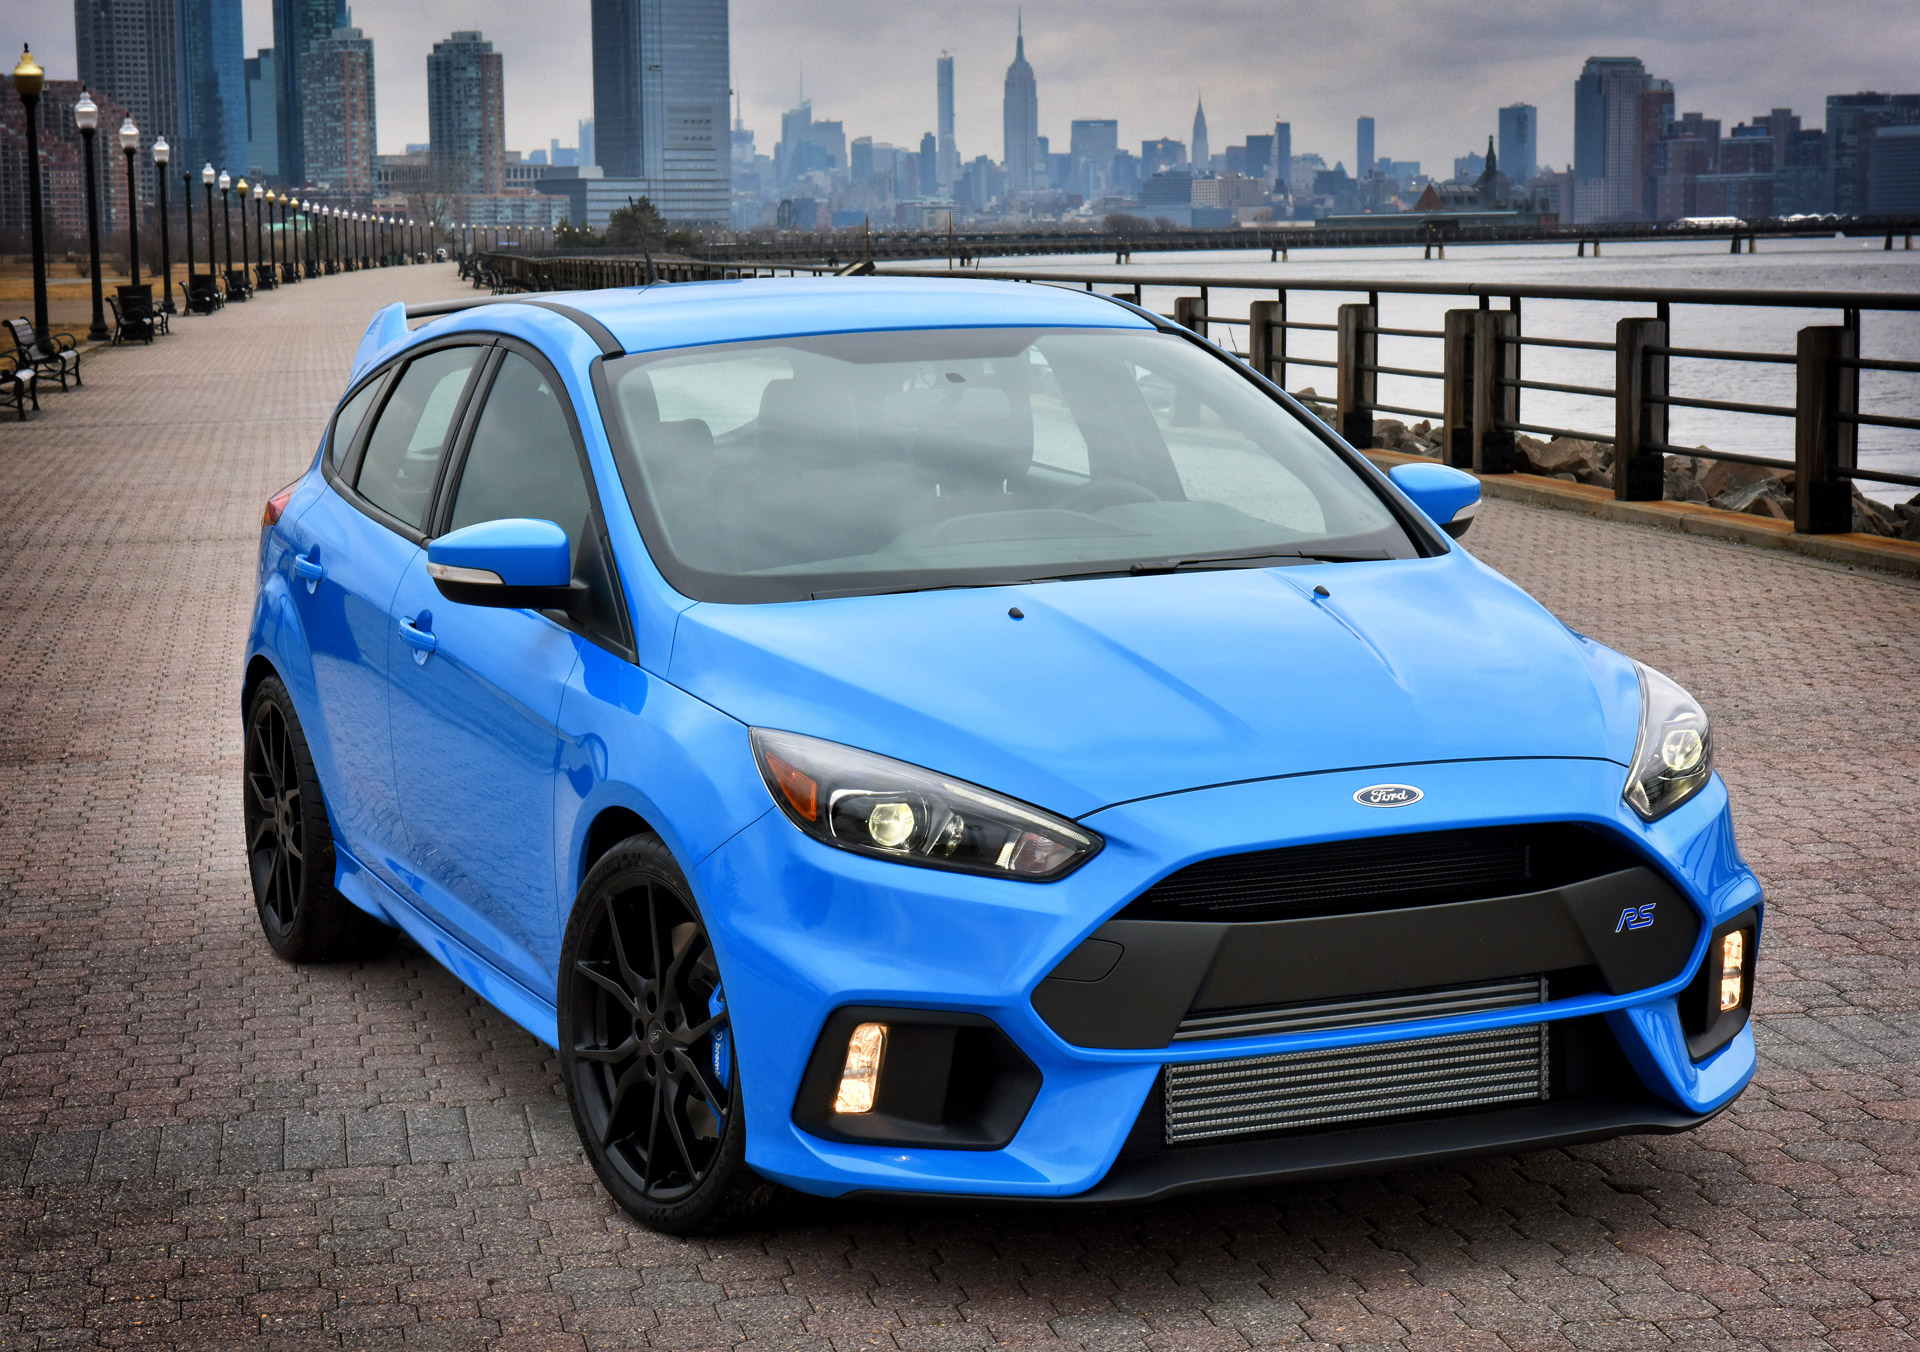 seriously is and outside focus themselves have inside driver bolstered review australia recaro both front a to some passenger hatch gizmodo the rs hot price pour will into ford australian